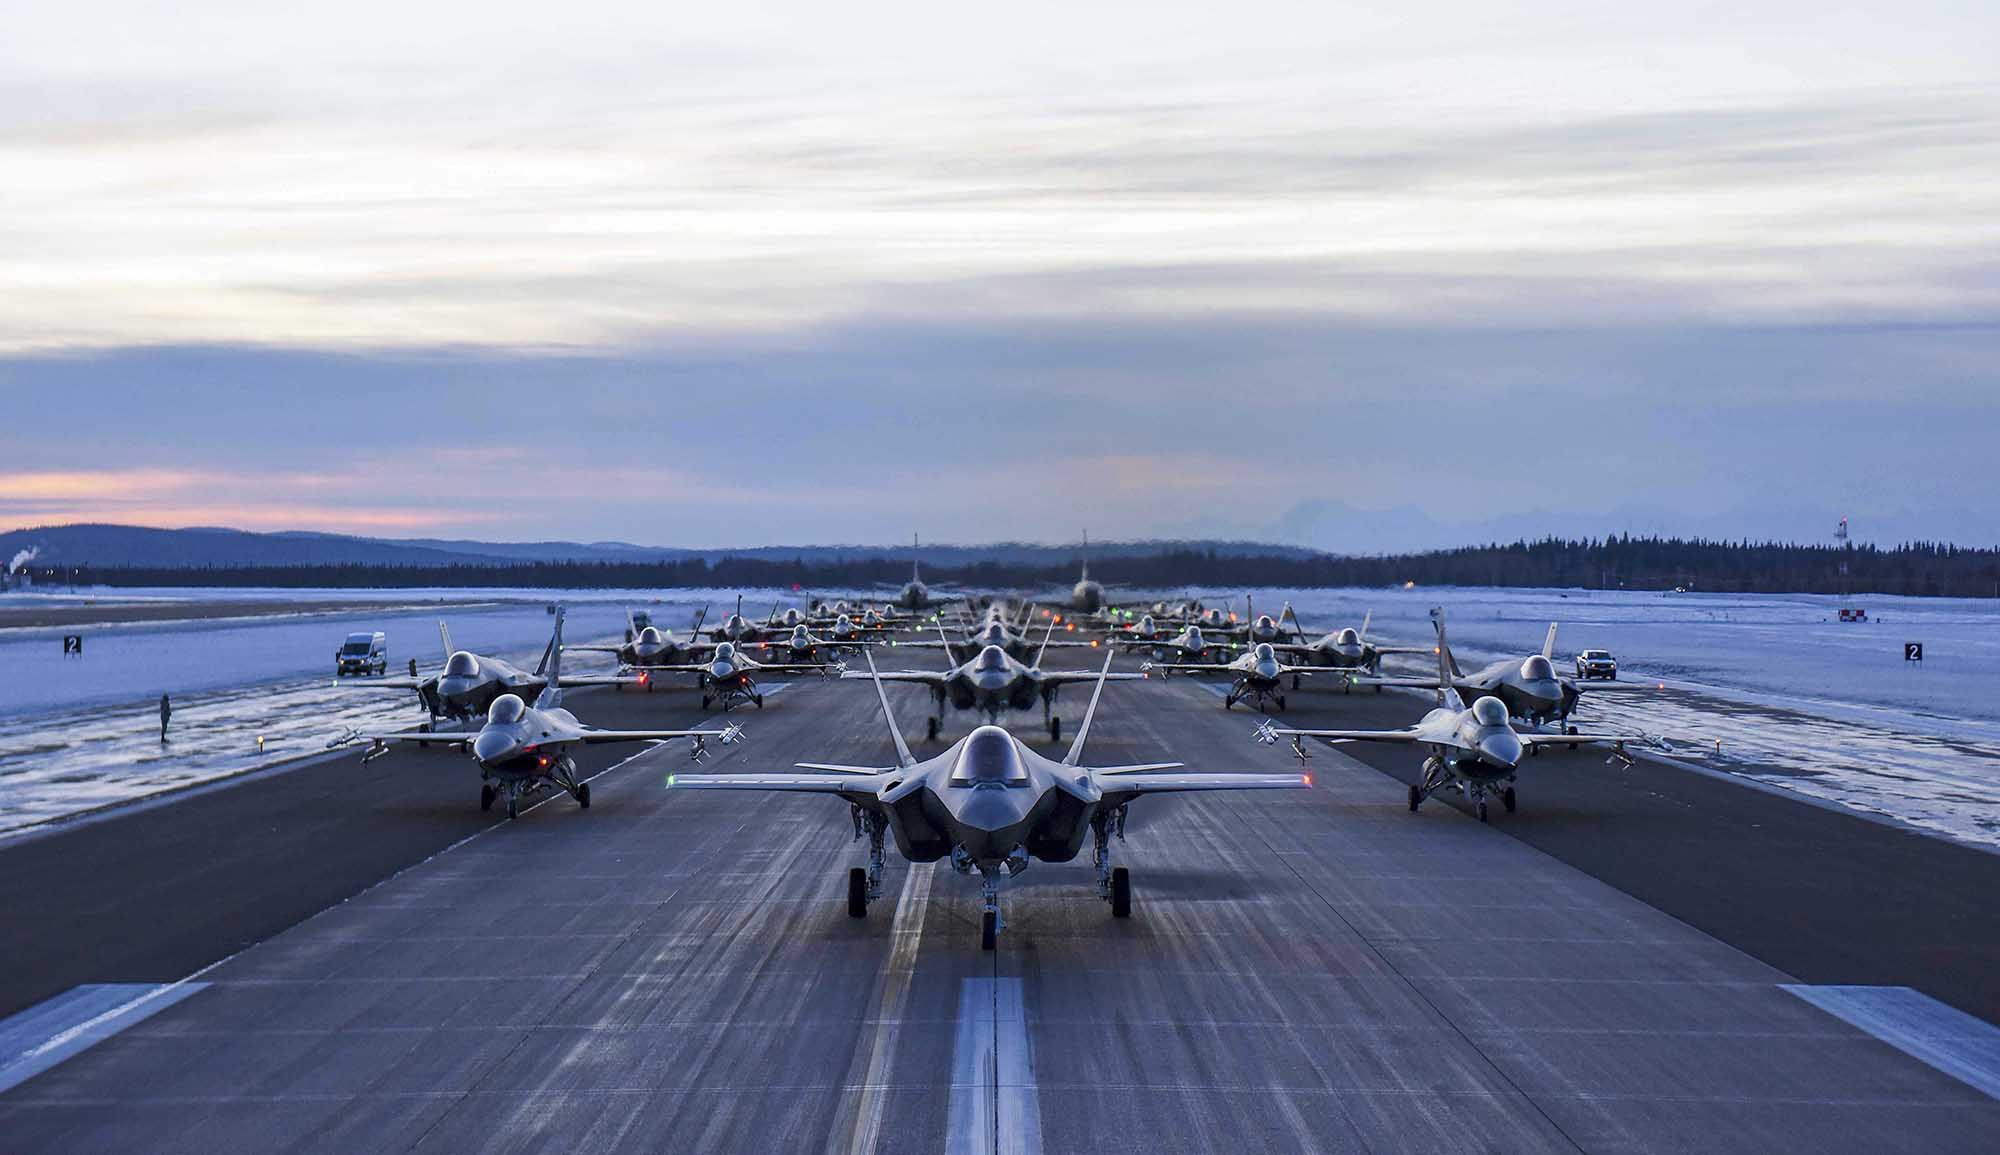 Aircraft assigned to the 354th Fighter Wing and 168th Wing park in formation on Eielson Air Force Base, Alaska, on Dec. 18, 2020. (Senior Airman Keith Holcomb/U.S. Air Force)